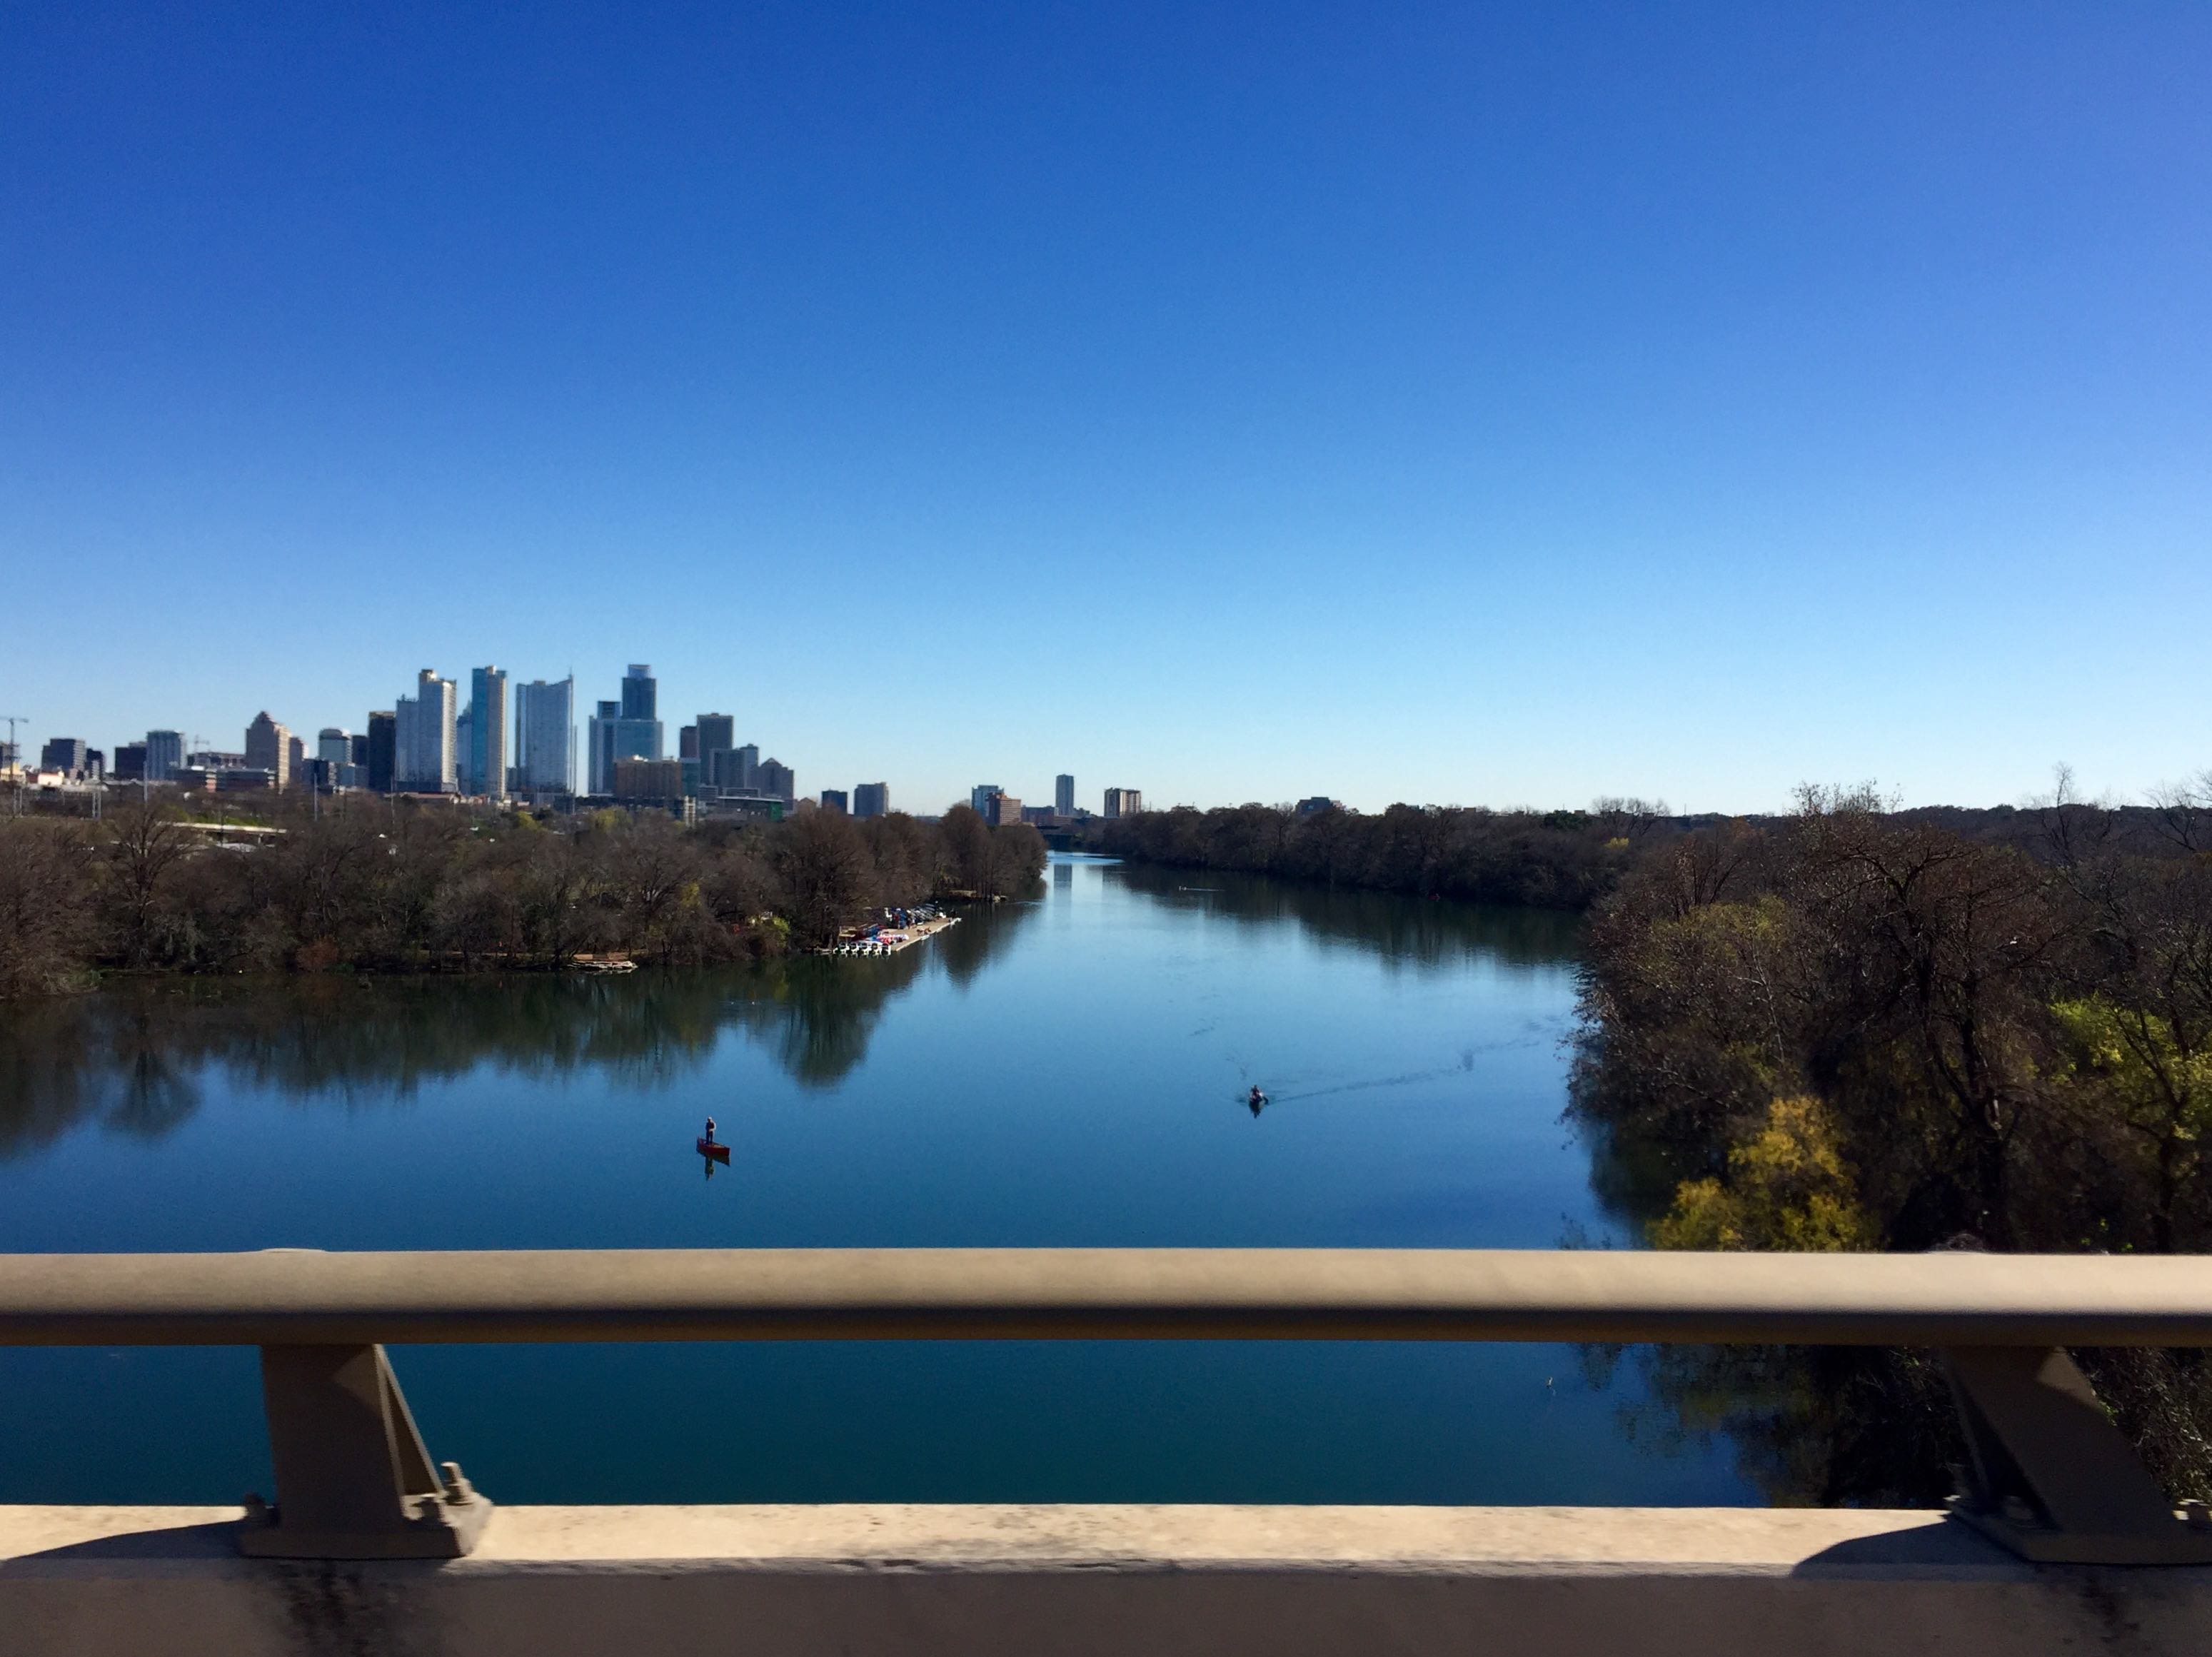 Highway view of Lady Bird Lake during the day.